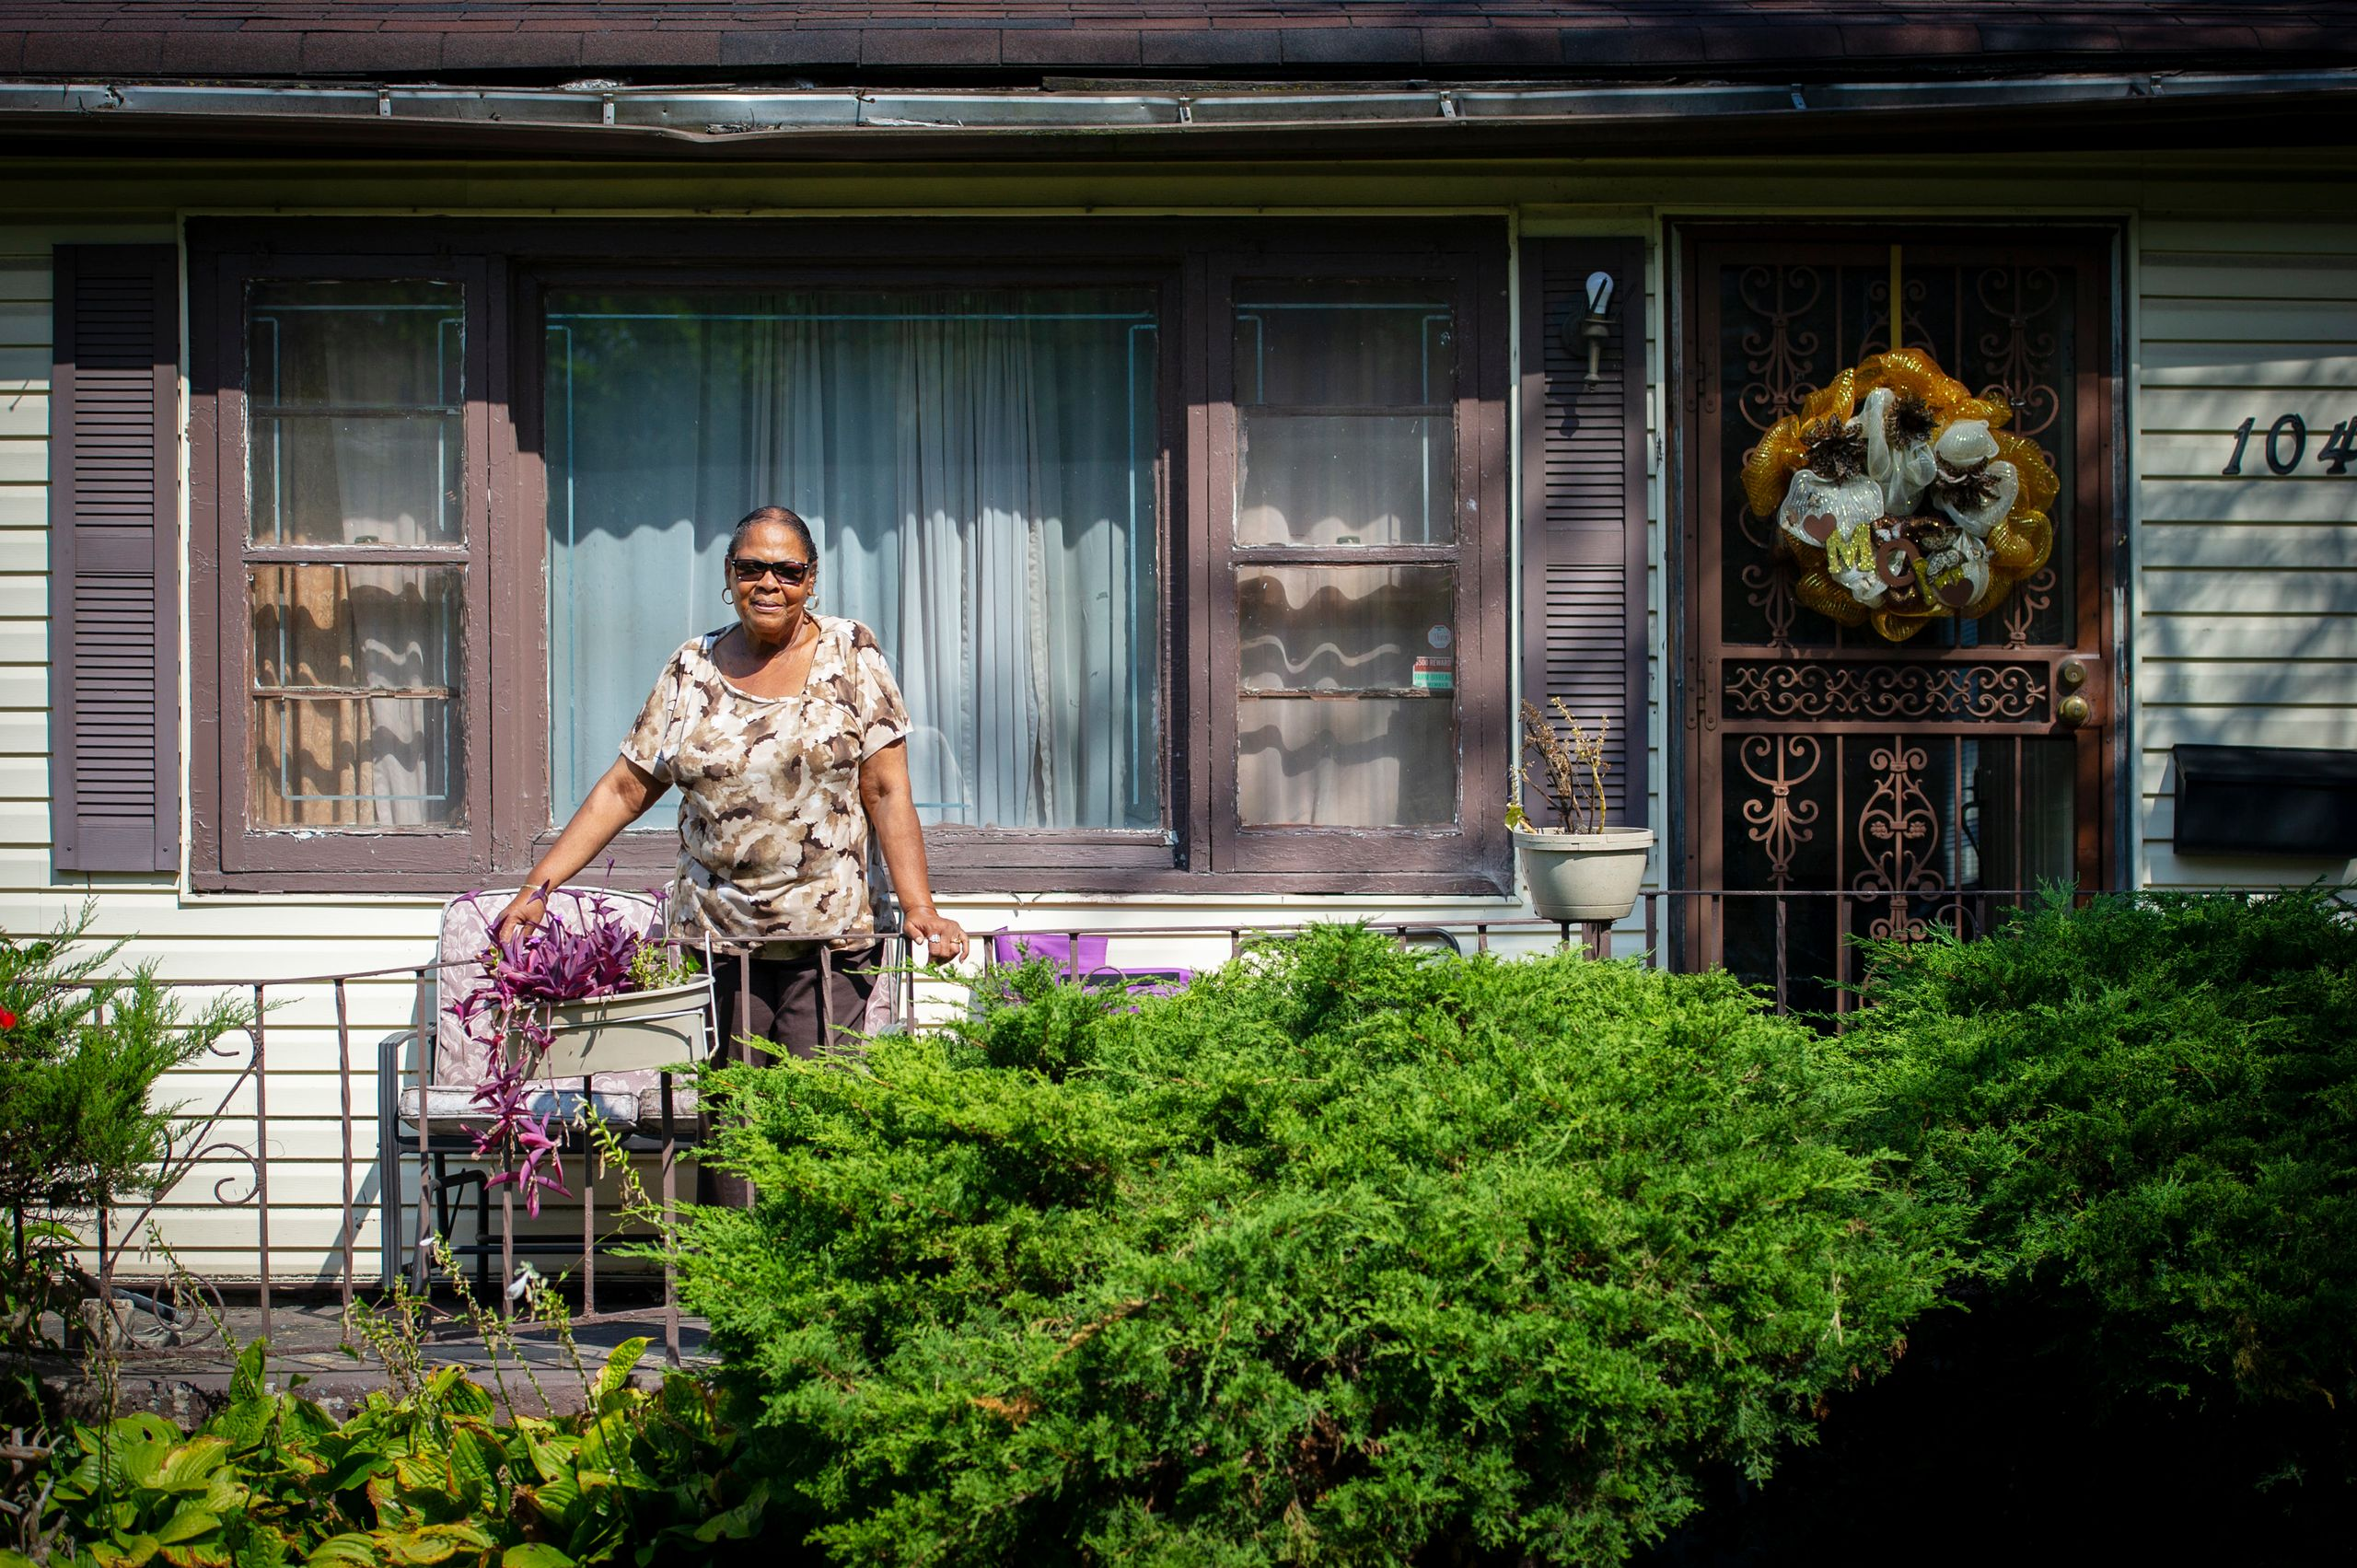 This Indiana City's Vacant Homes Show The Other Side Of The Housing